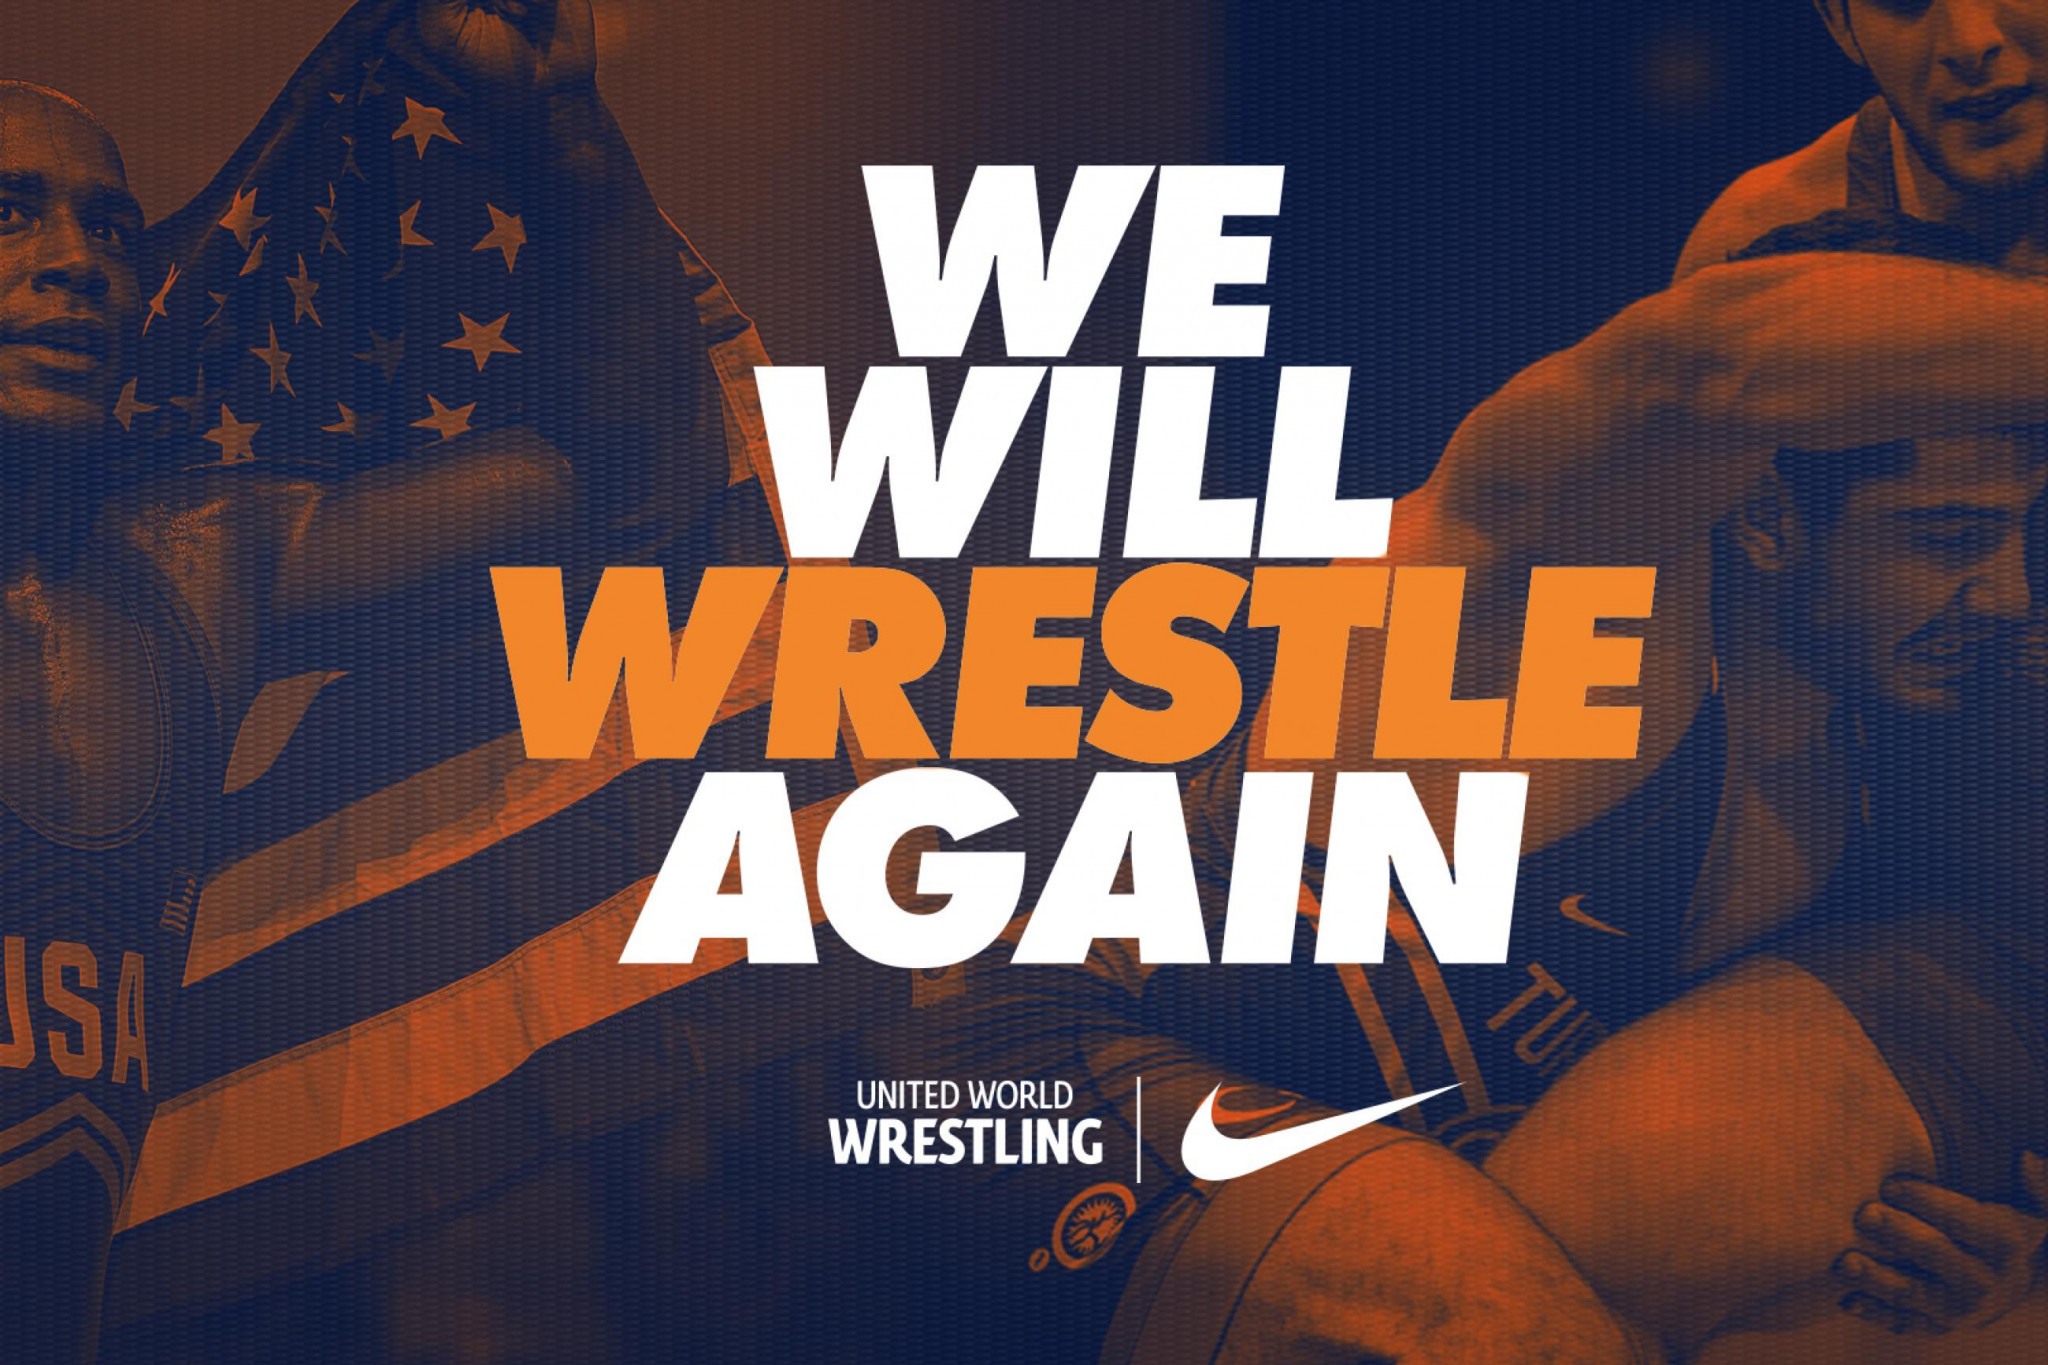 United World Wrestling partners with Nike for recovery campaign